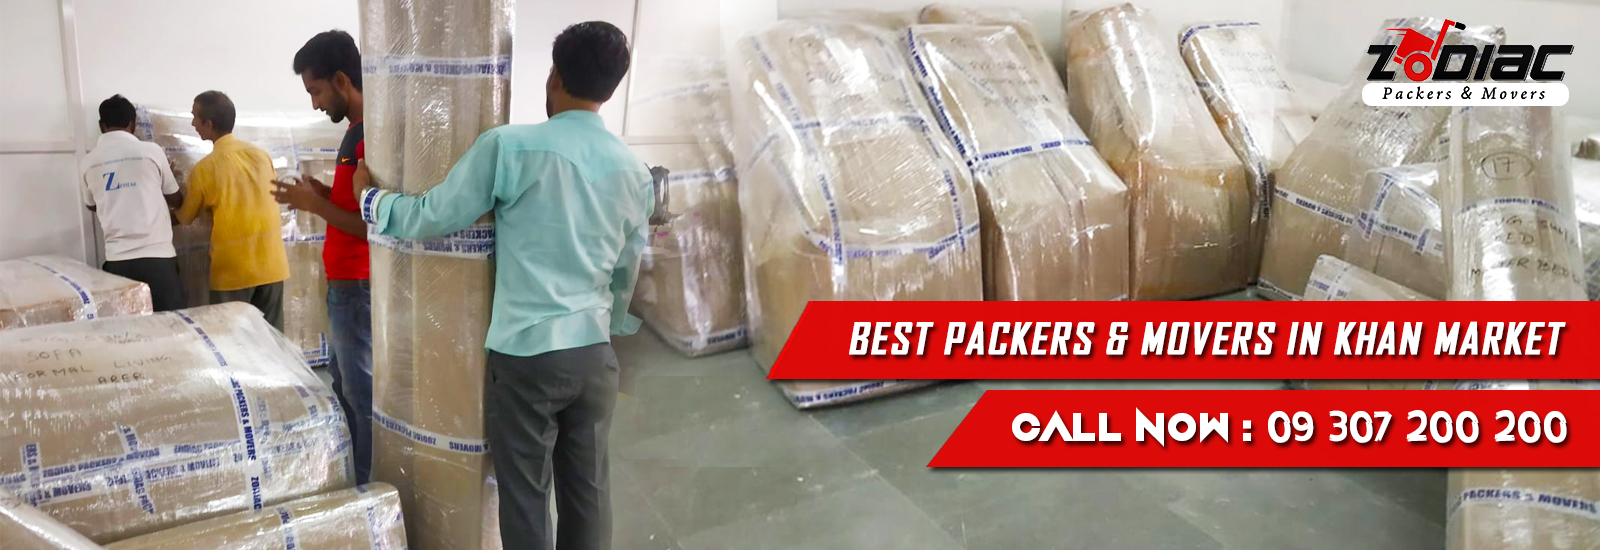 Packers and Movers in Khan Market